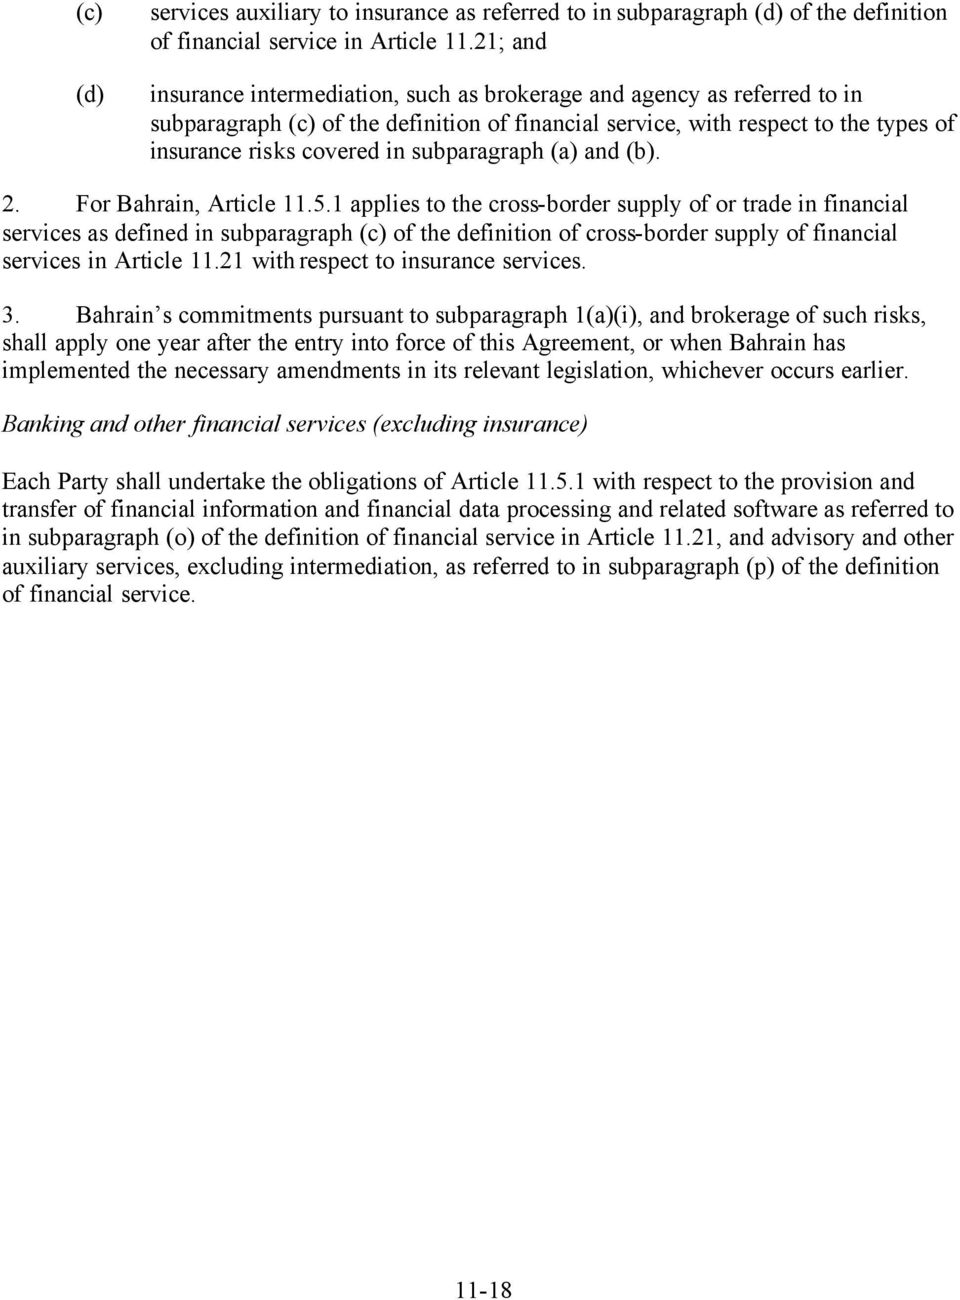 subparagraph and. 2. For Bahrain, Article 11.5.